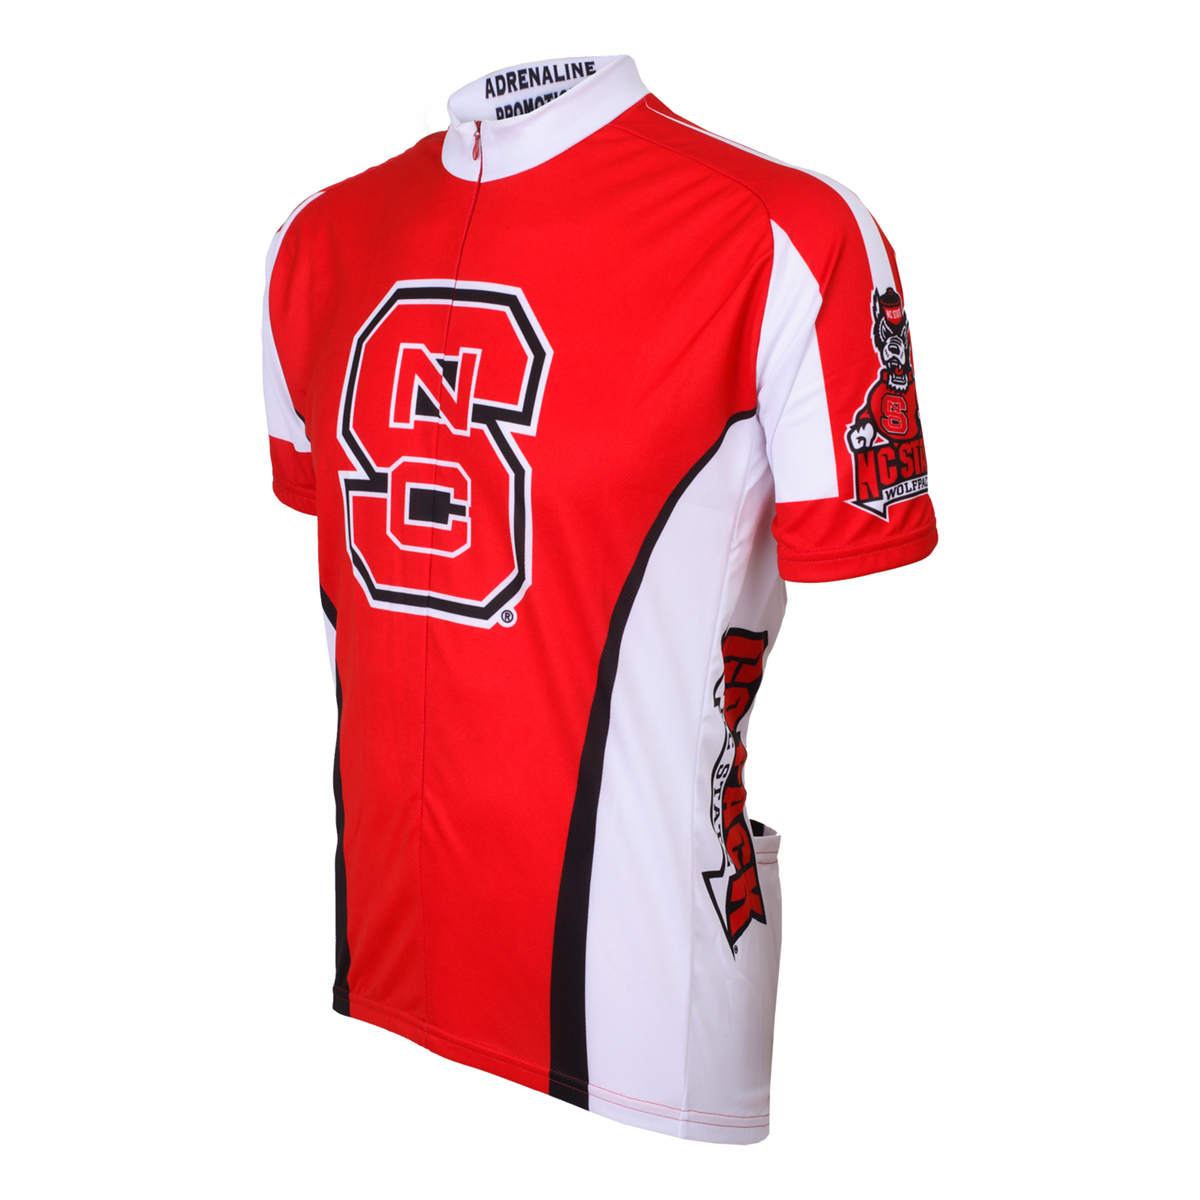 Adrenaline Promotions North Carolina State Wolfpack Cycling Jersey